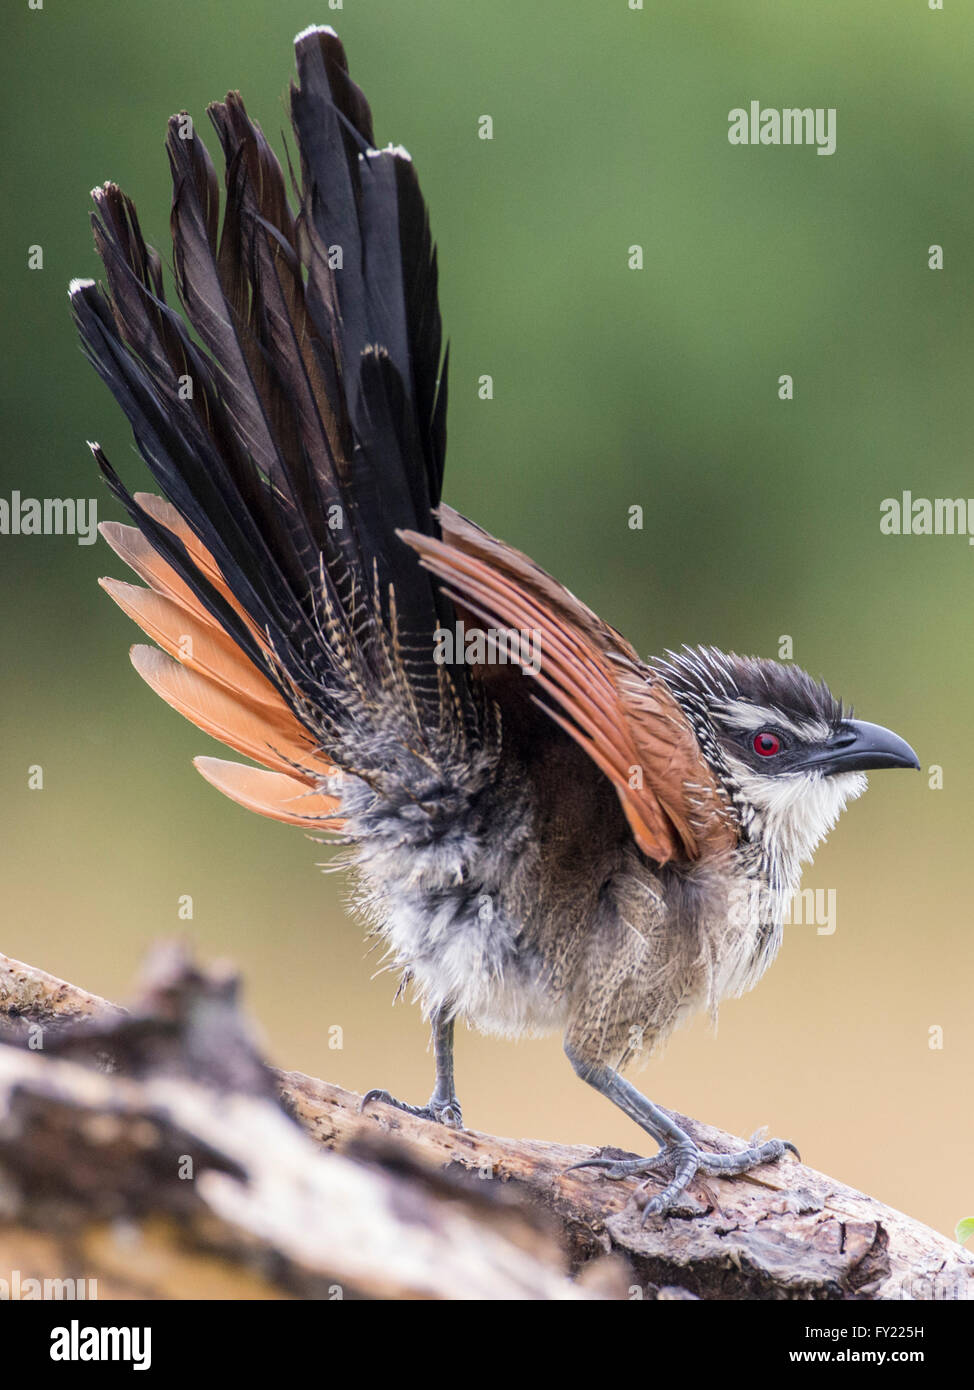 White-browed Coucal (Centropus superciliosus), Queen Elizabeth National Park, Uganda - Stock Image